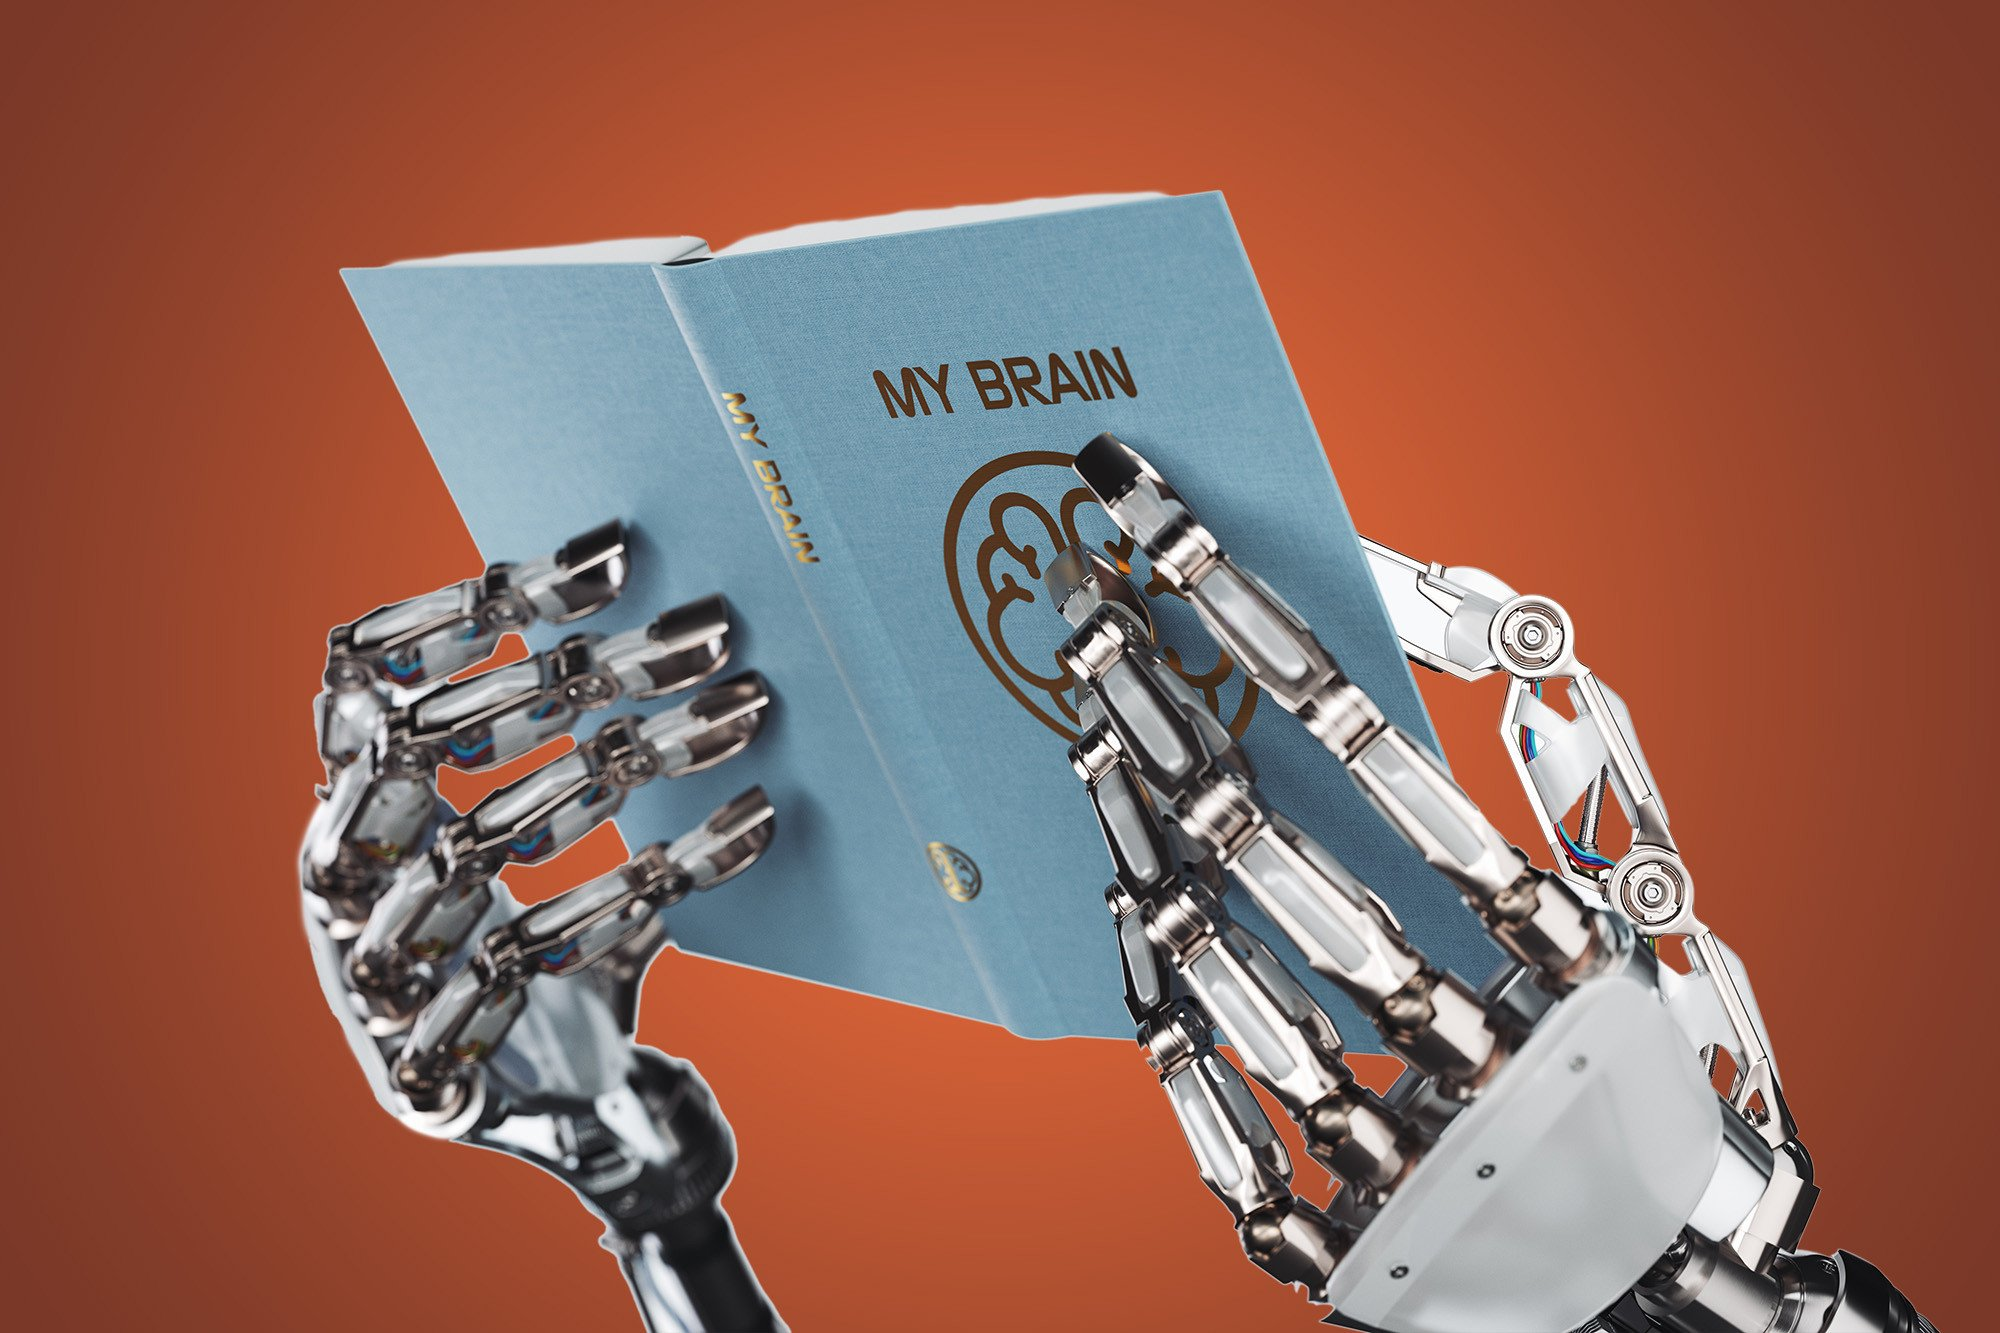 AI systems are beating humans in reading comprehension